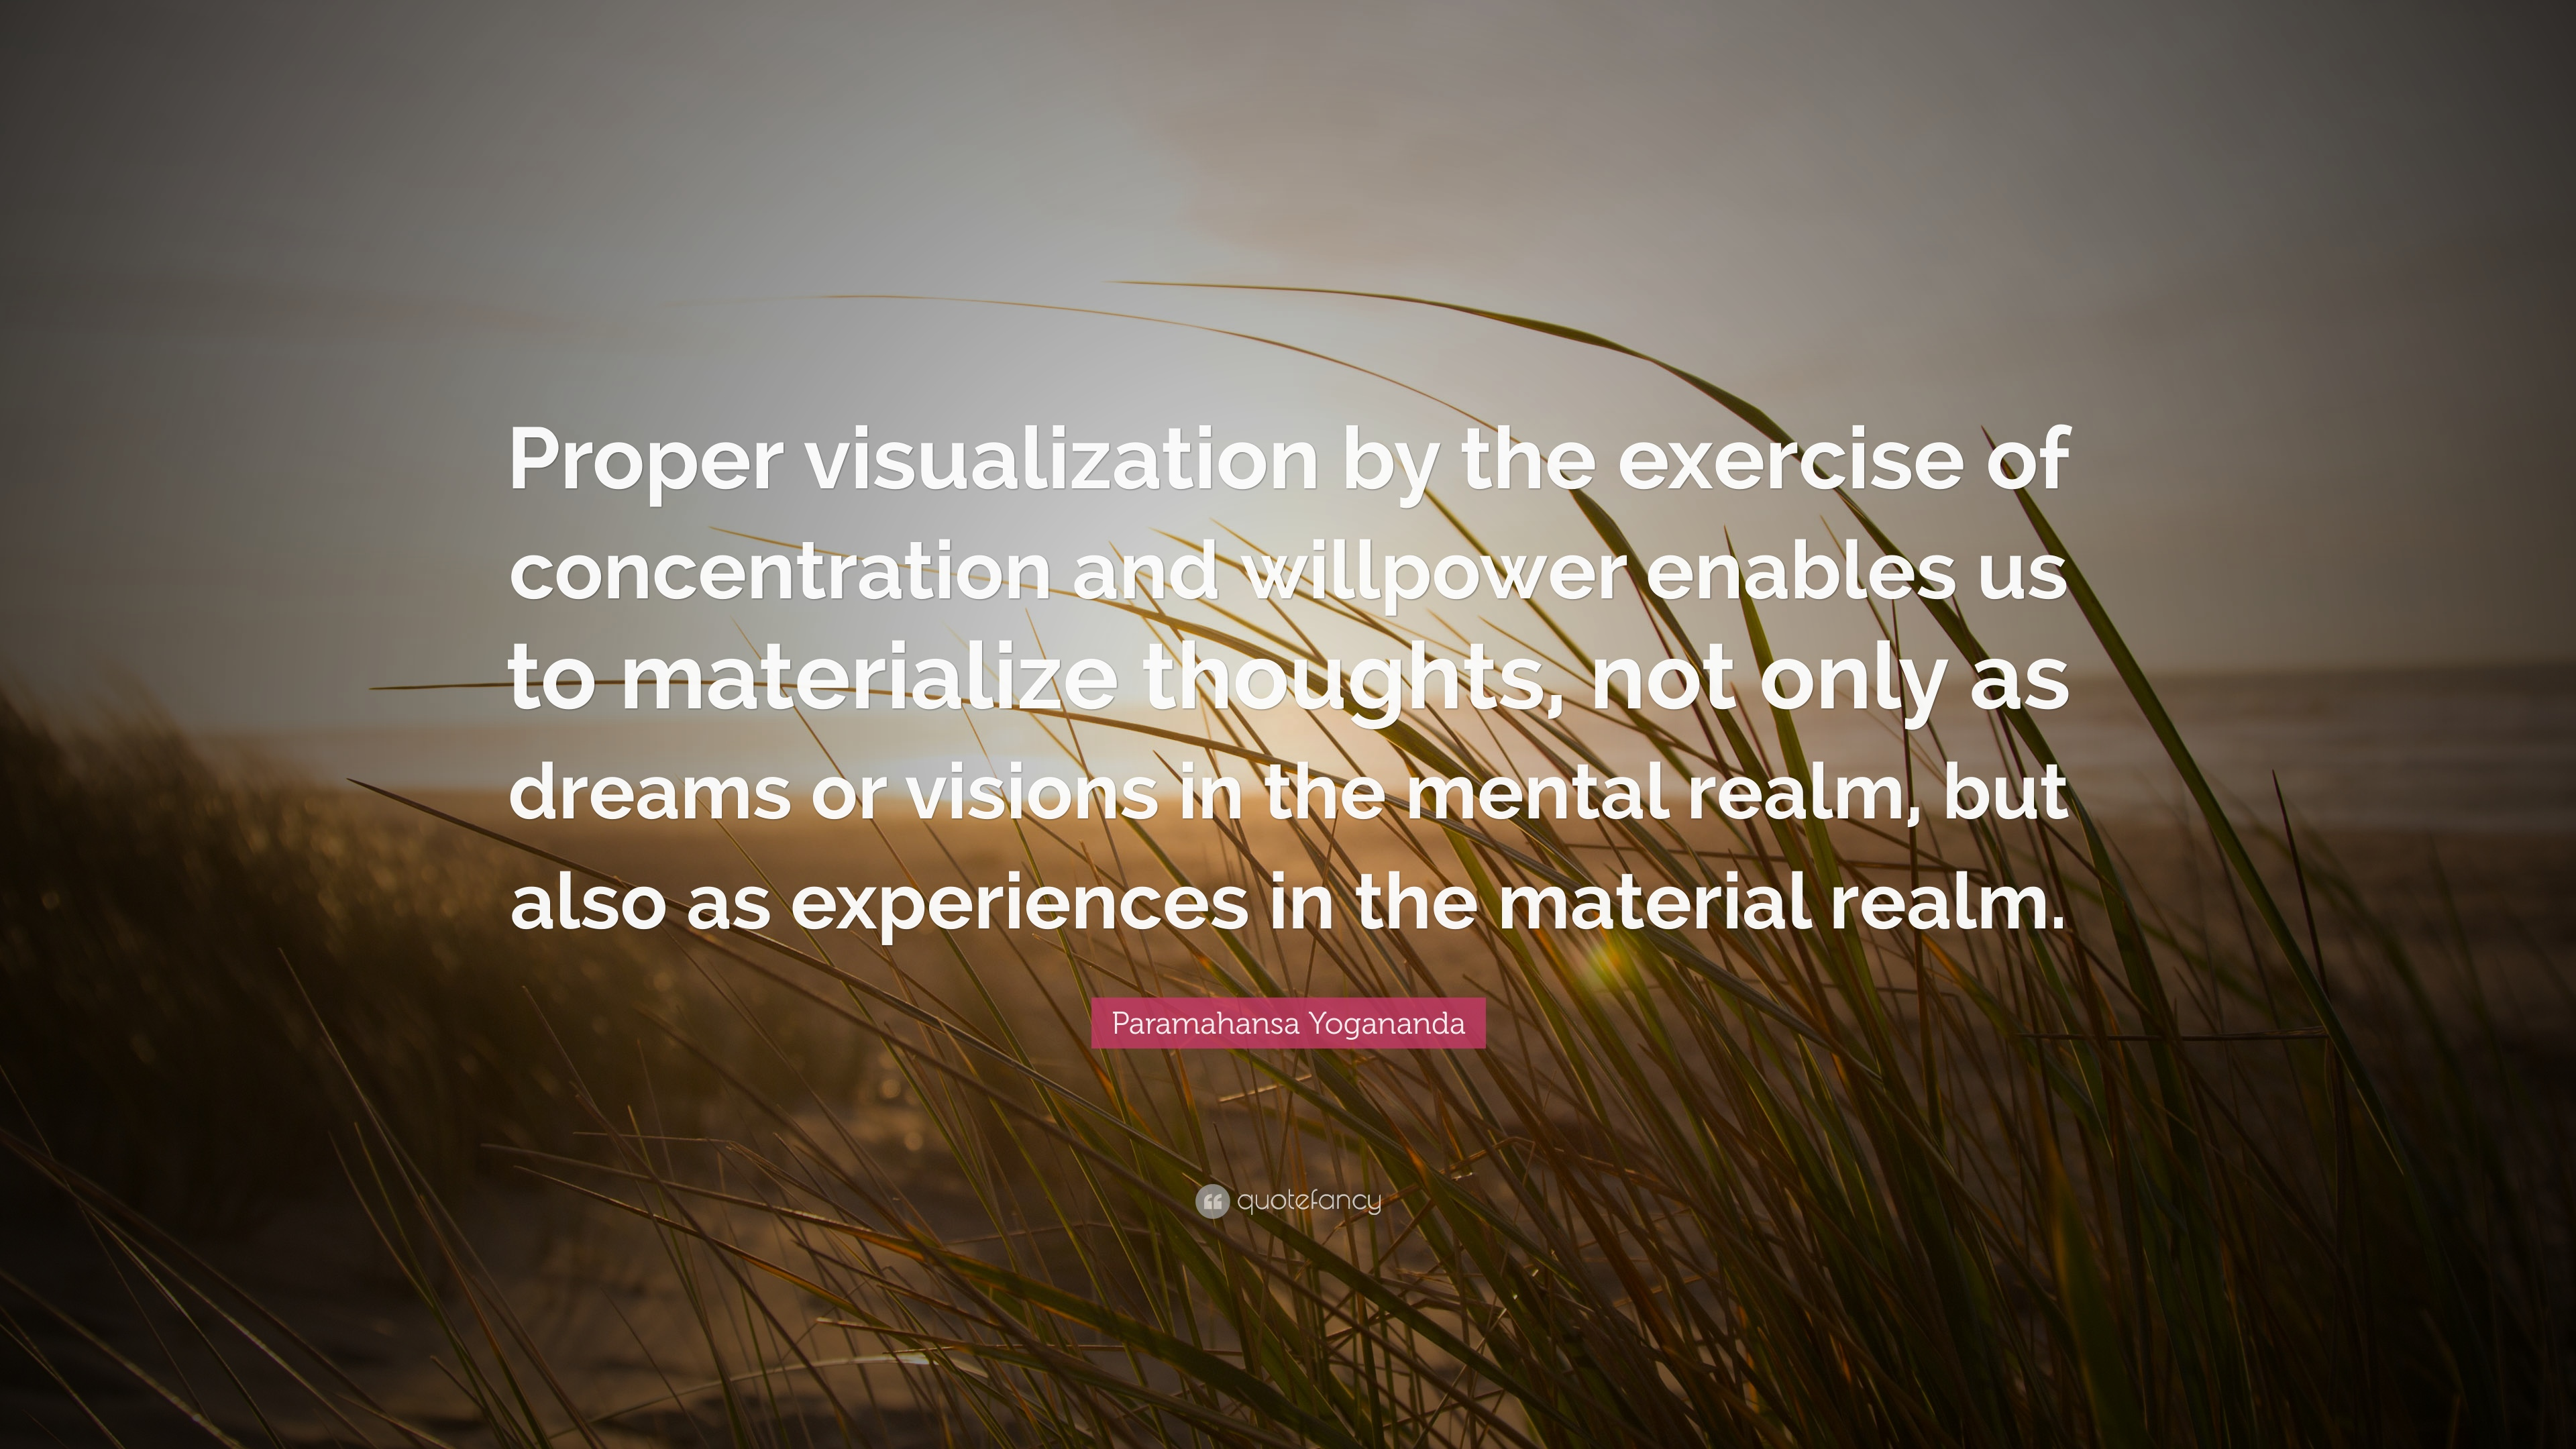 Materialization of thoughts 40